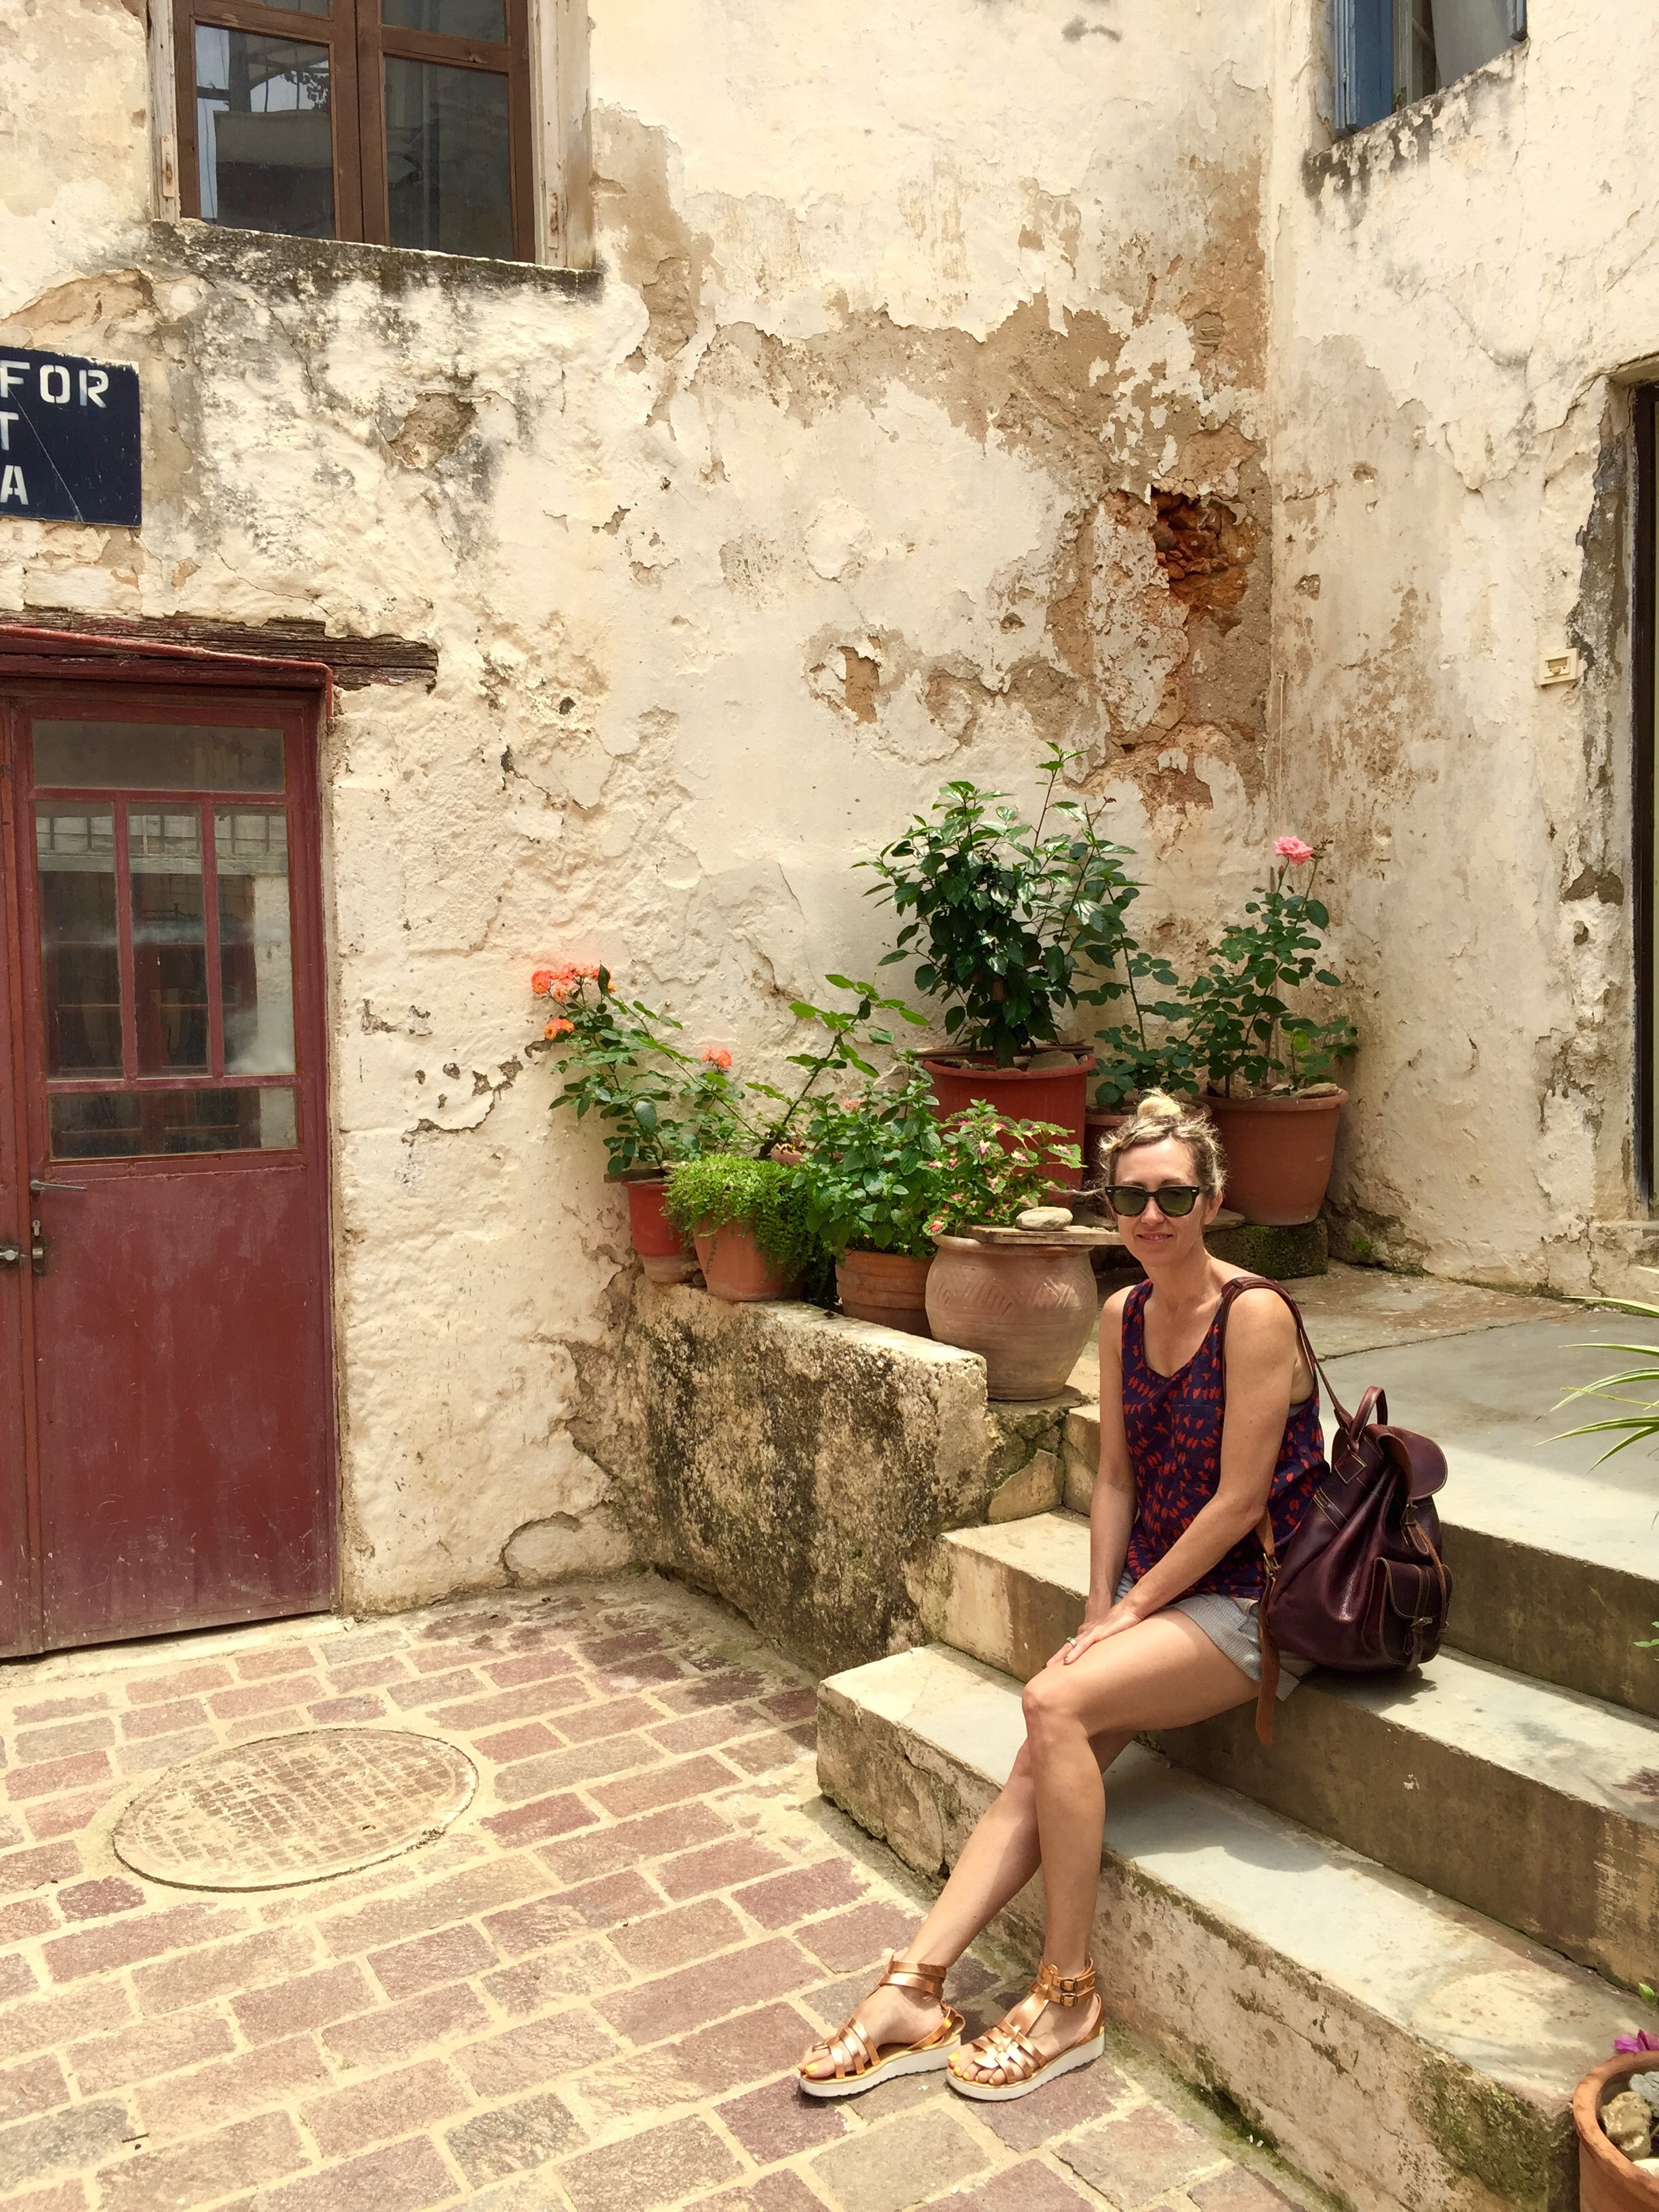 In the cobble stone streets